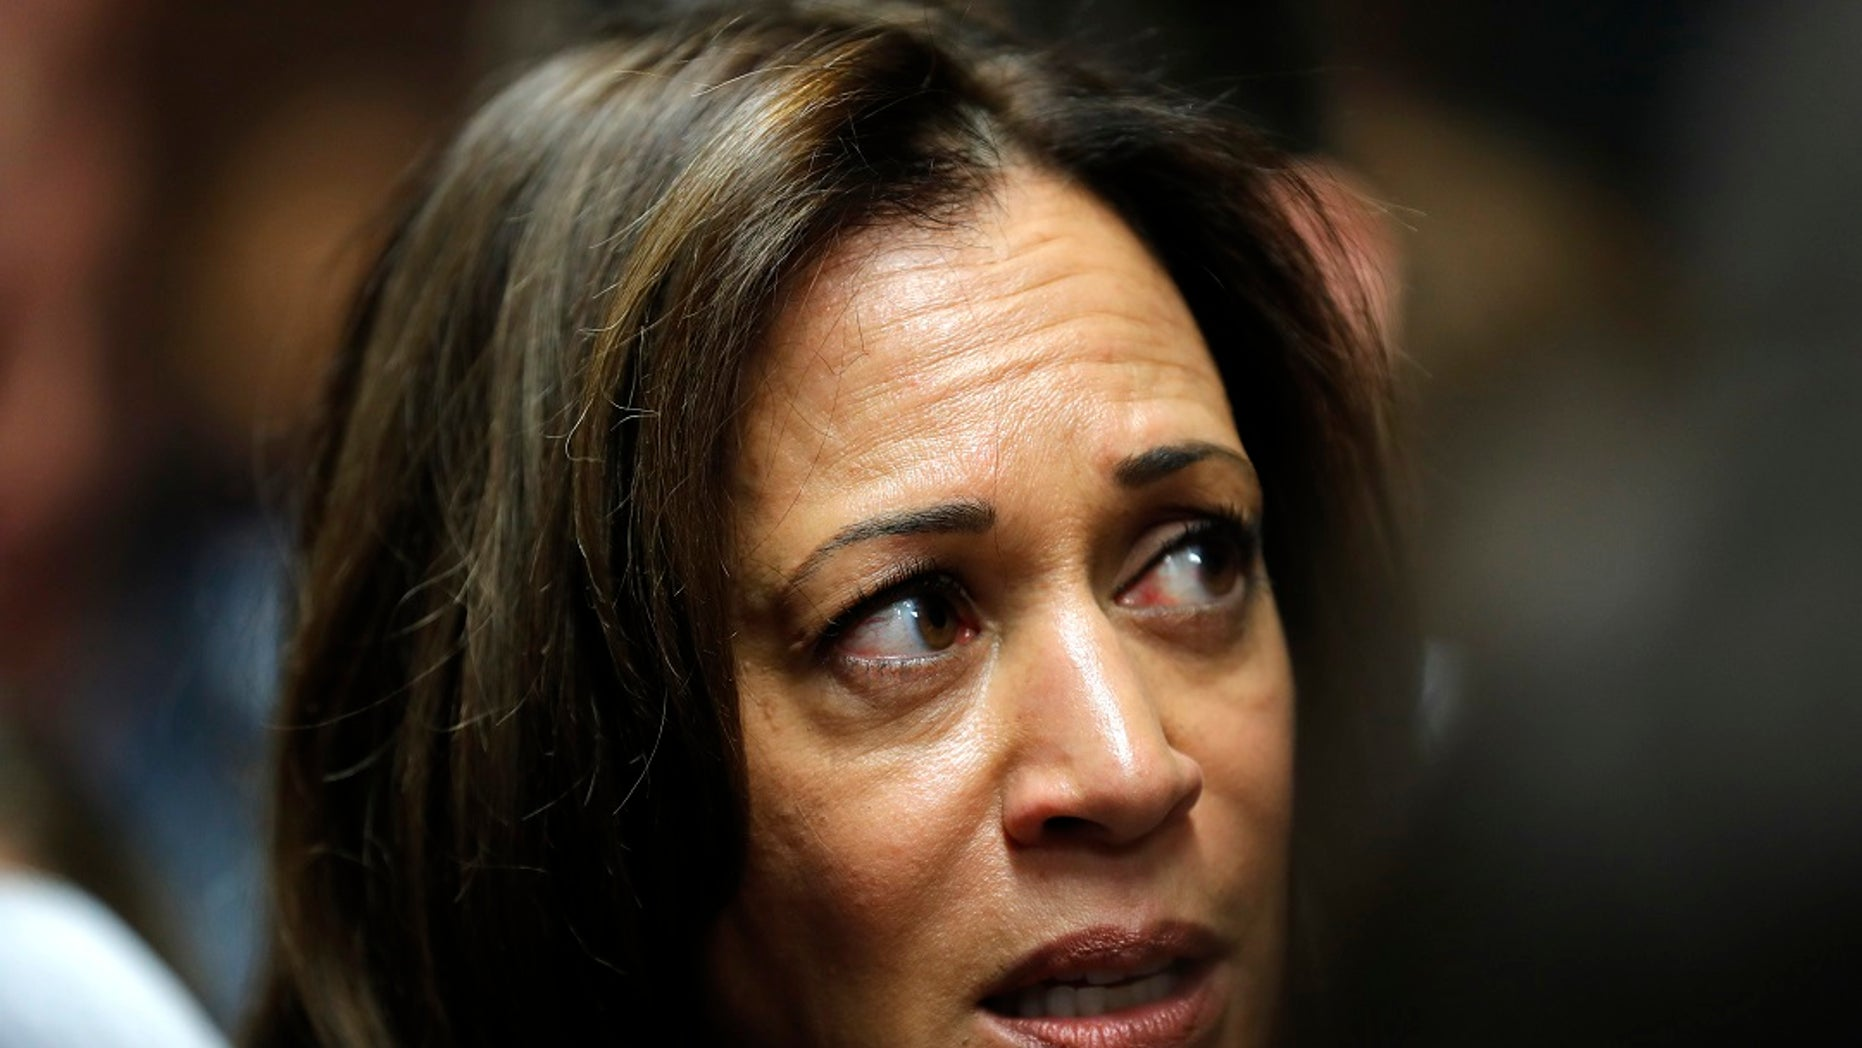 U.S. Sen. Kamala Harris, D-Calif., speaks to reporters following an event at Des Moines Area Community College in Ankeny, Iowa. (Associated Press)